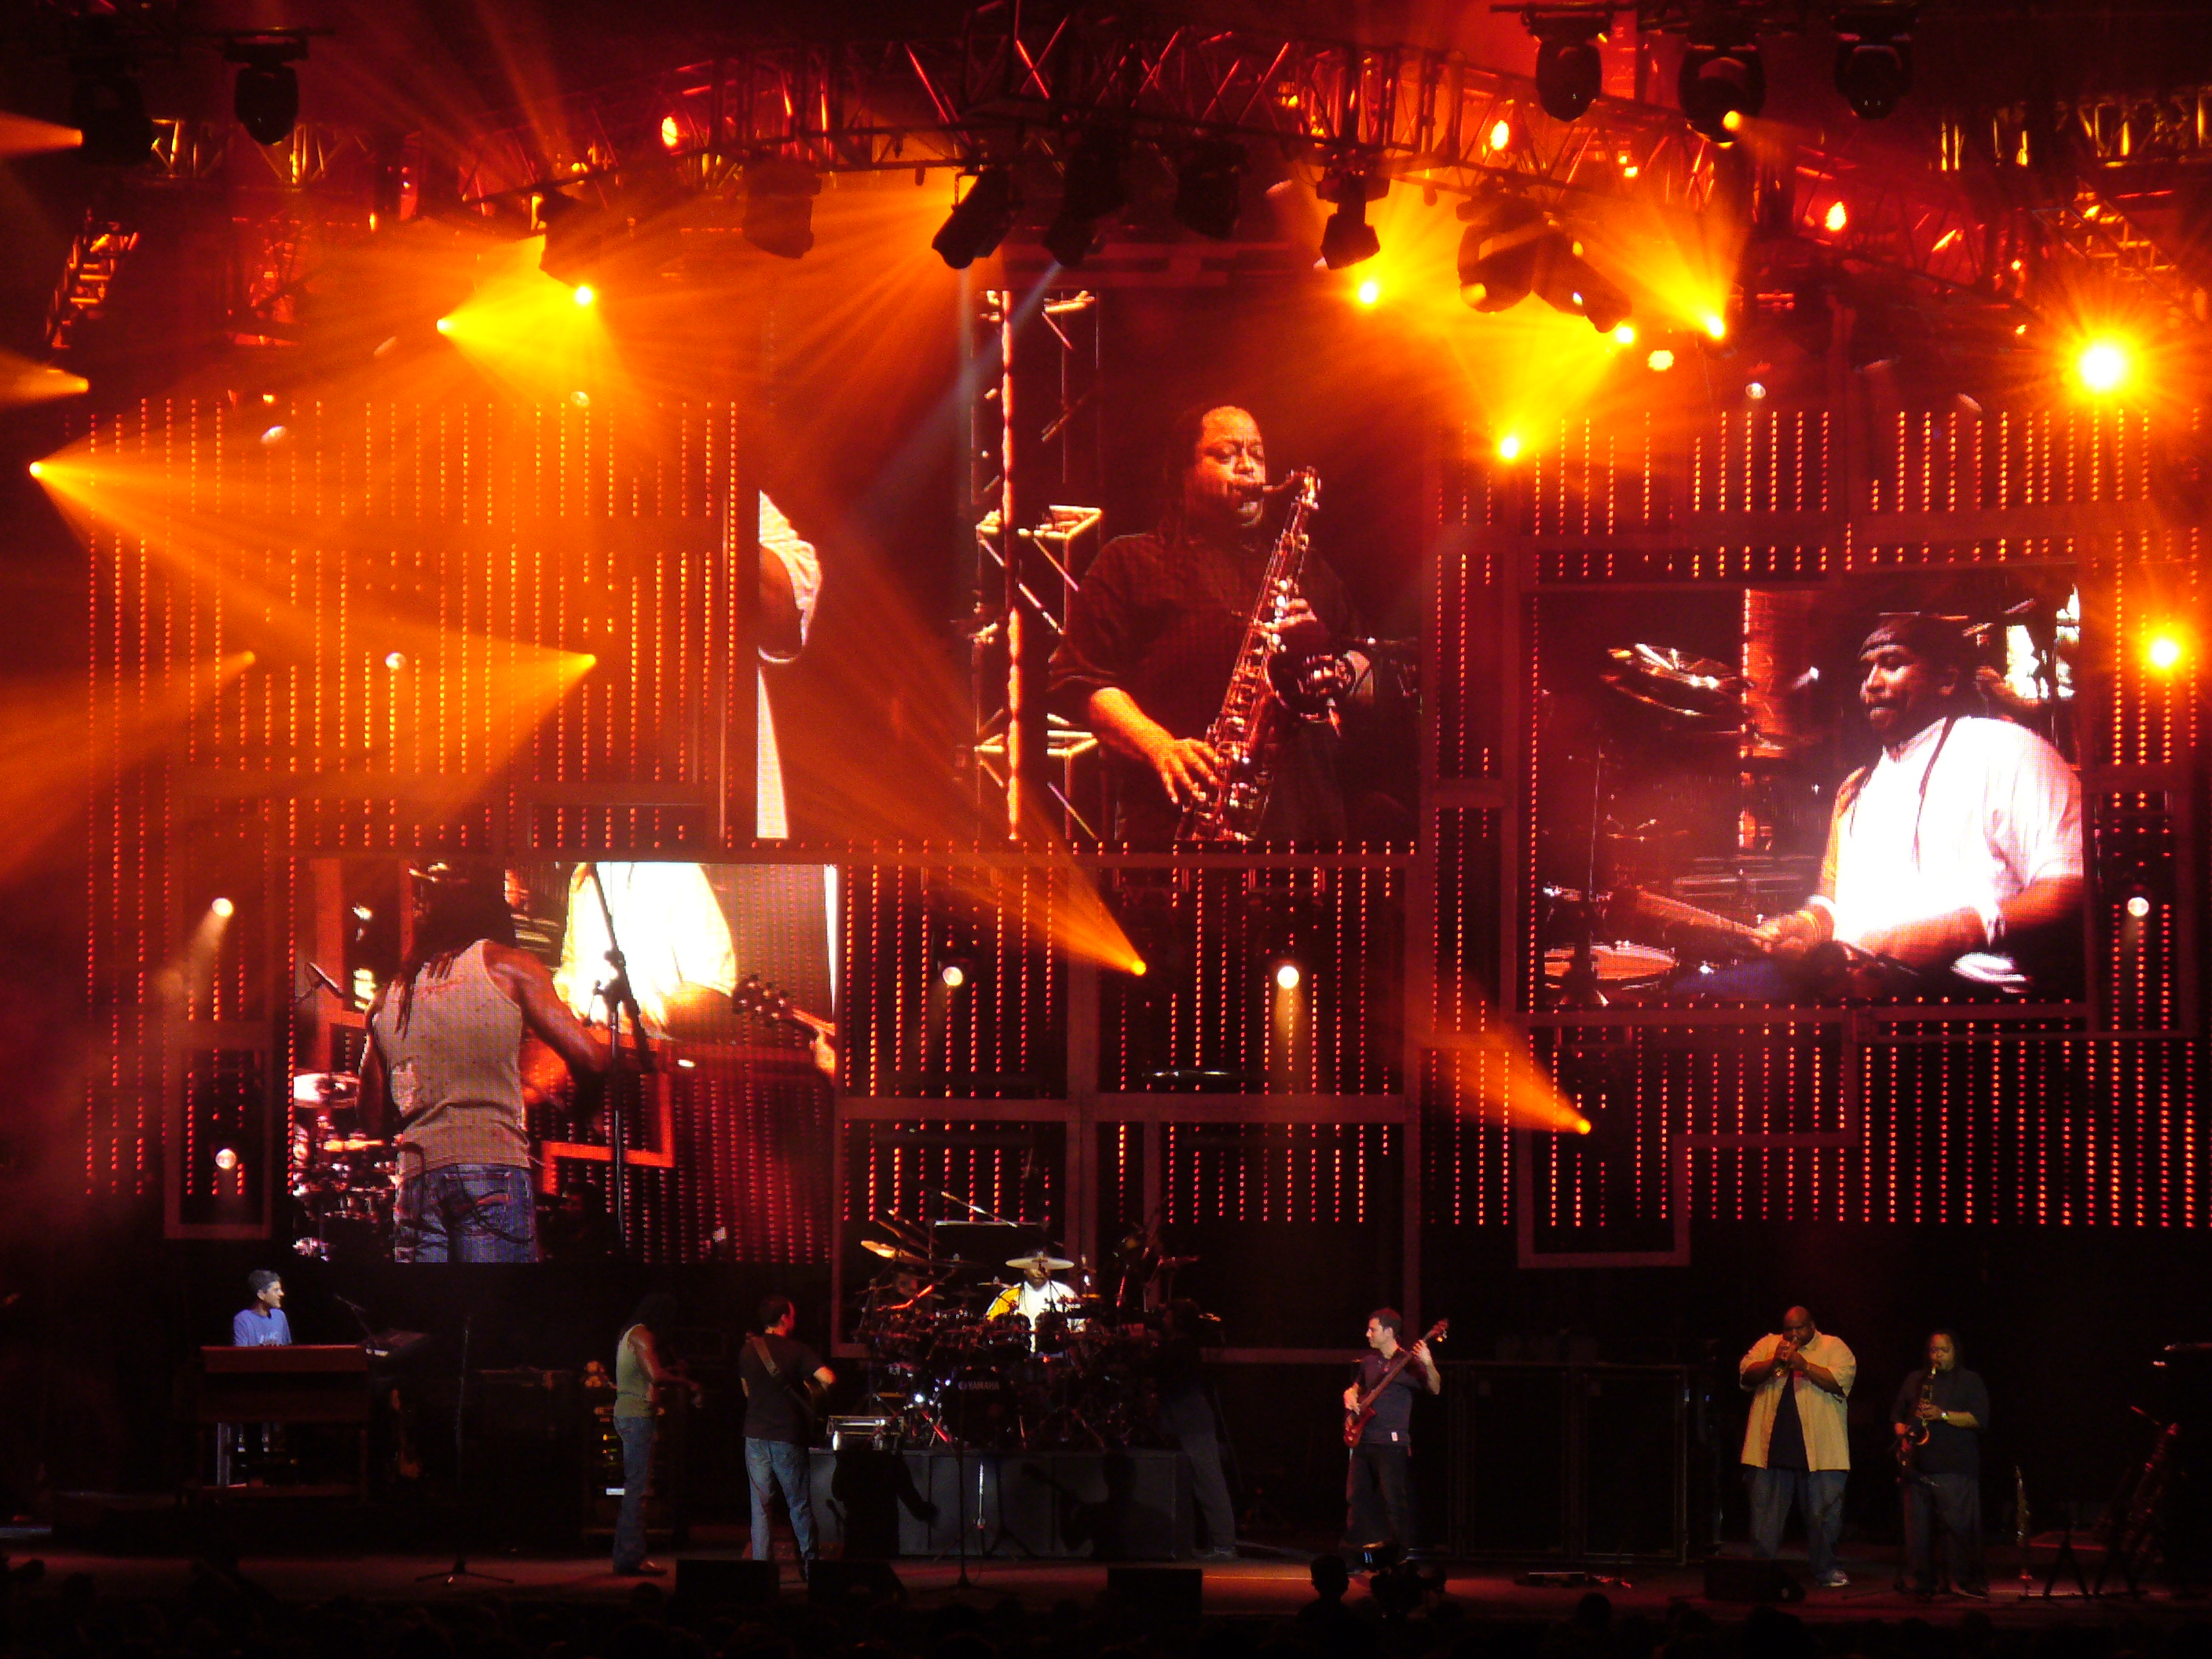 Dave Matthews Band - 2003-07-12: Verizon Wireless Amphitheater, Bonner Springs, K